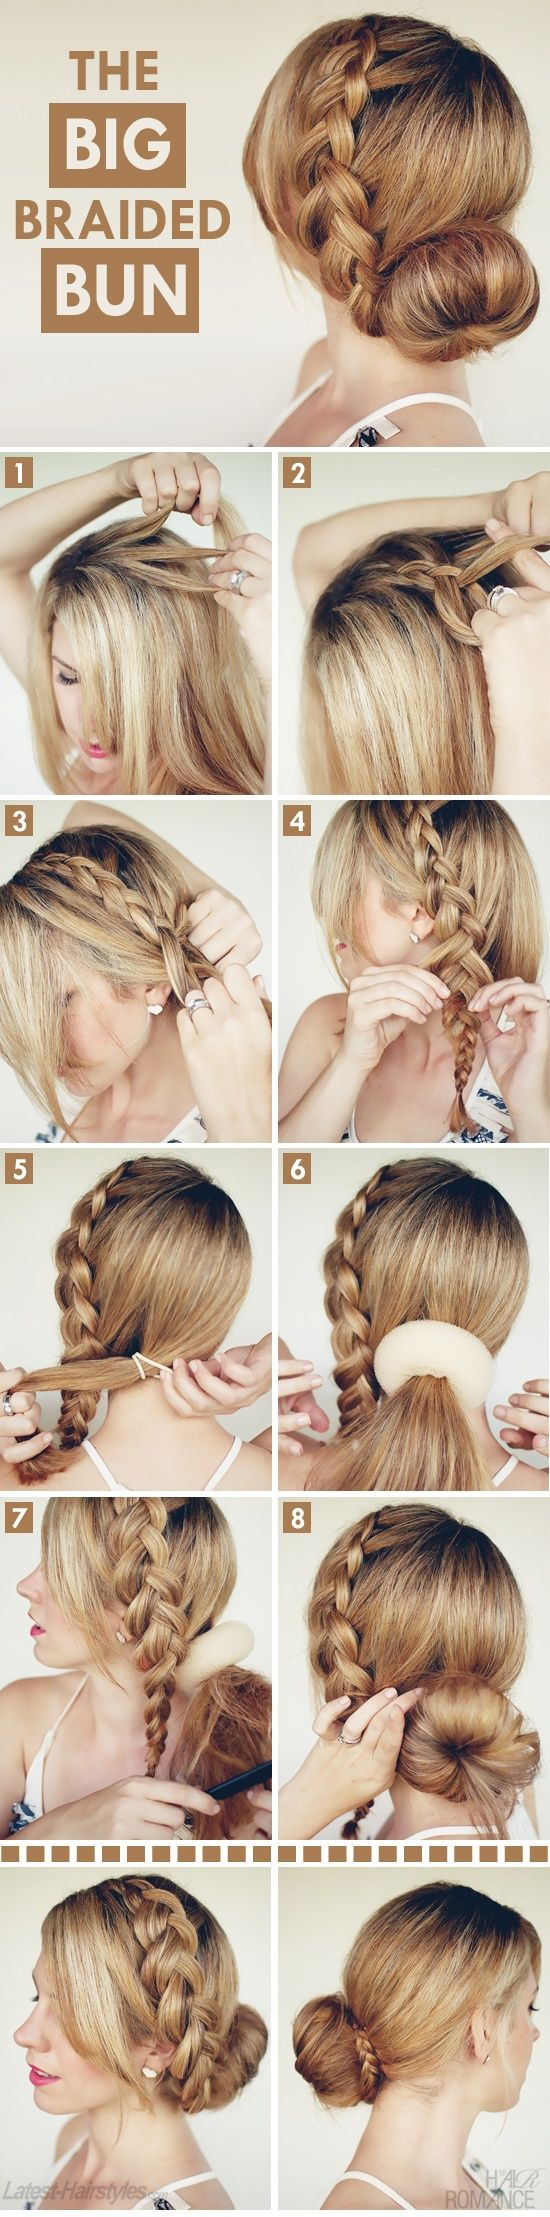 I have never used a bun maker - wonder if it's hard to use. Hairstyle for wedding - maybe @Rachel Fisher